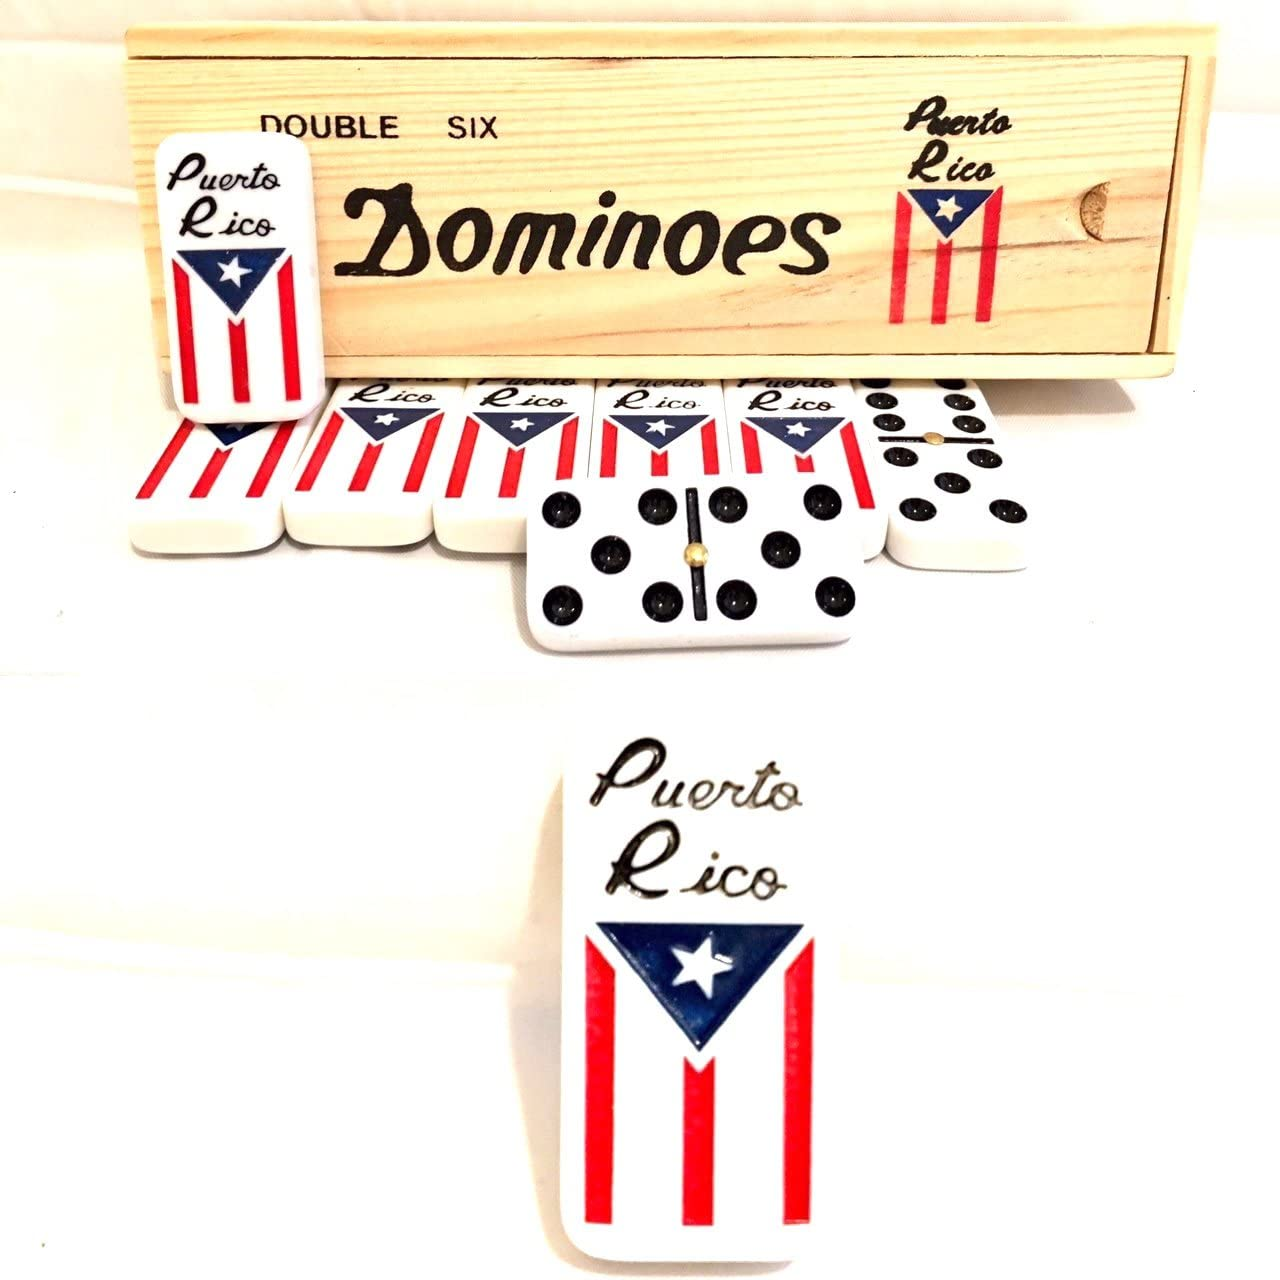 Puerto Rico Dominoes Puerto Rican flag Dominoes set, Boricua pride dominoes